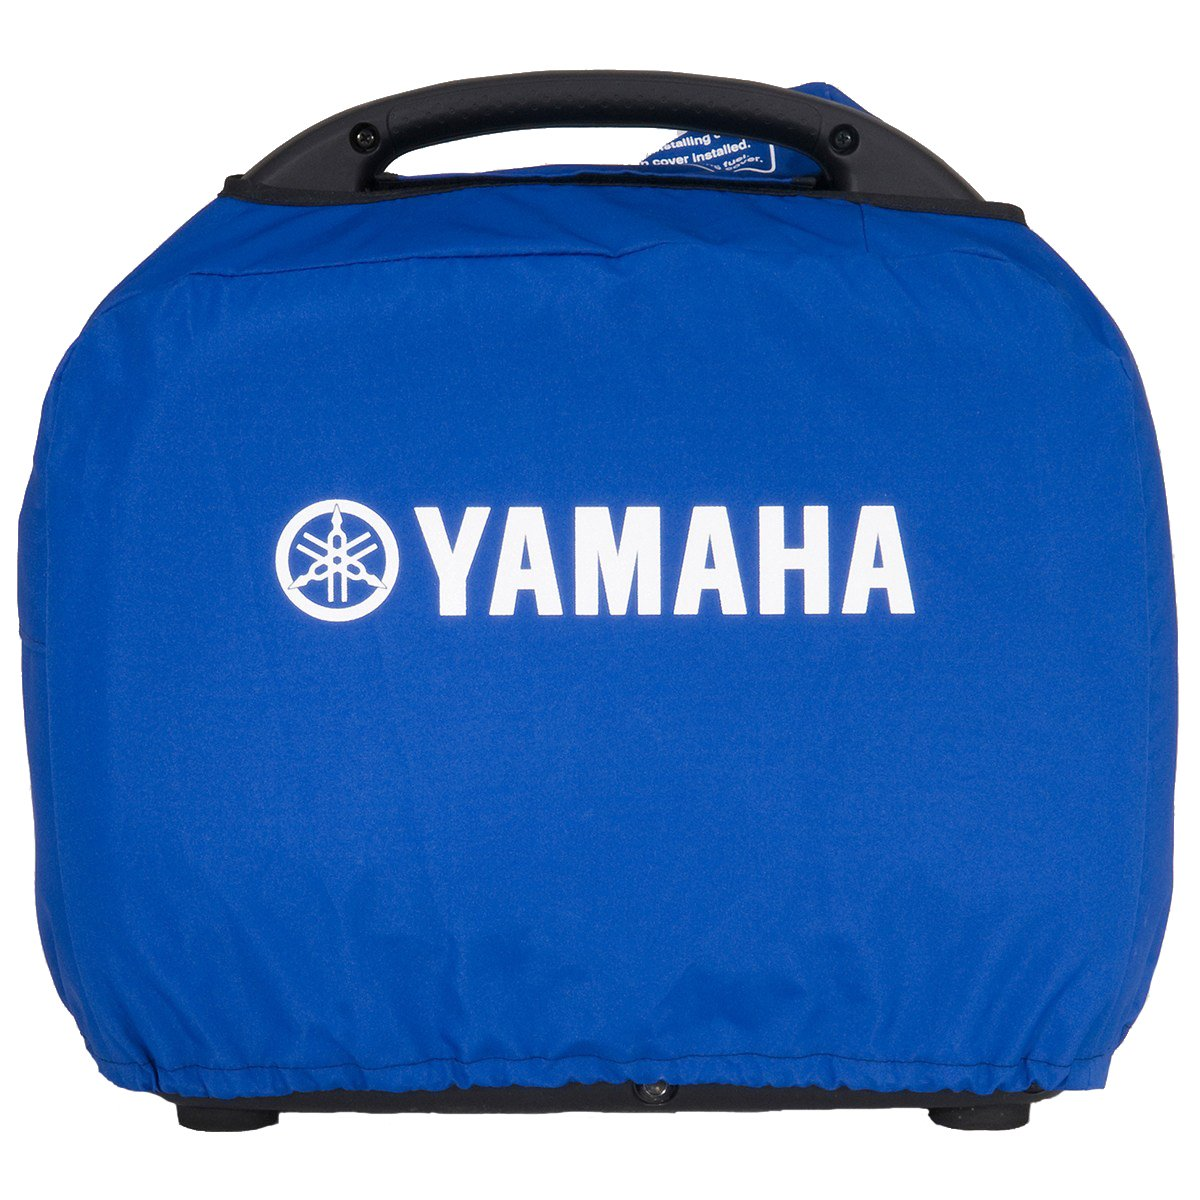 Yamaha ACC-GNCVR-10-01 Generator Cover for Models EF1000iS by YAMAHA